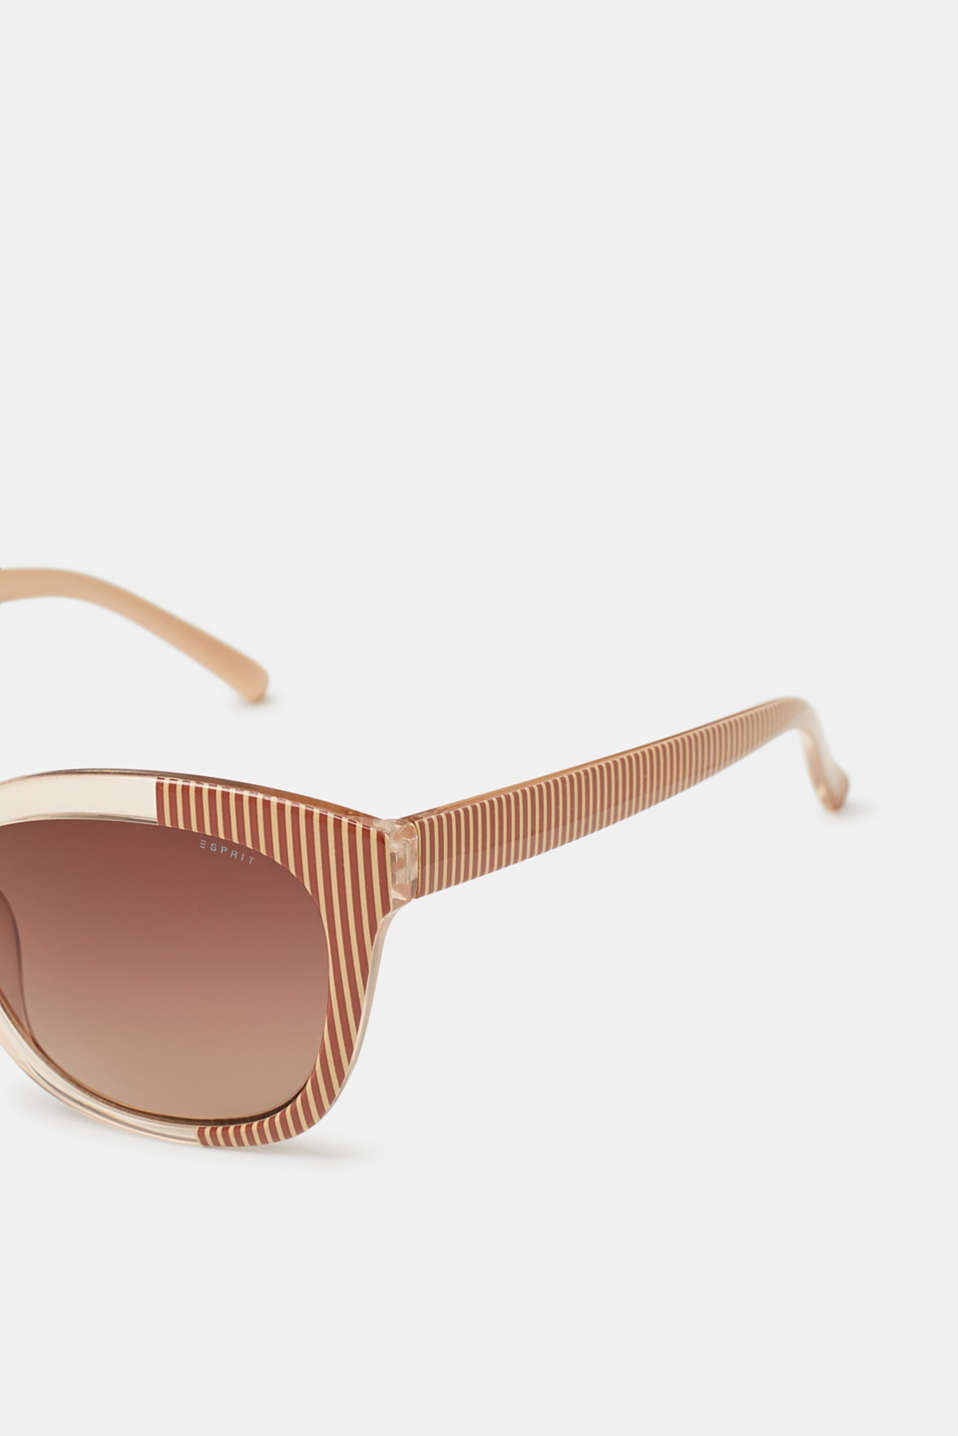 Sunglasses with a striped pattern